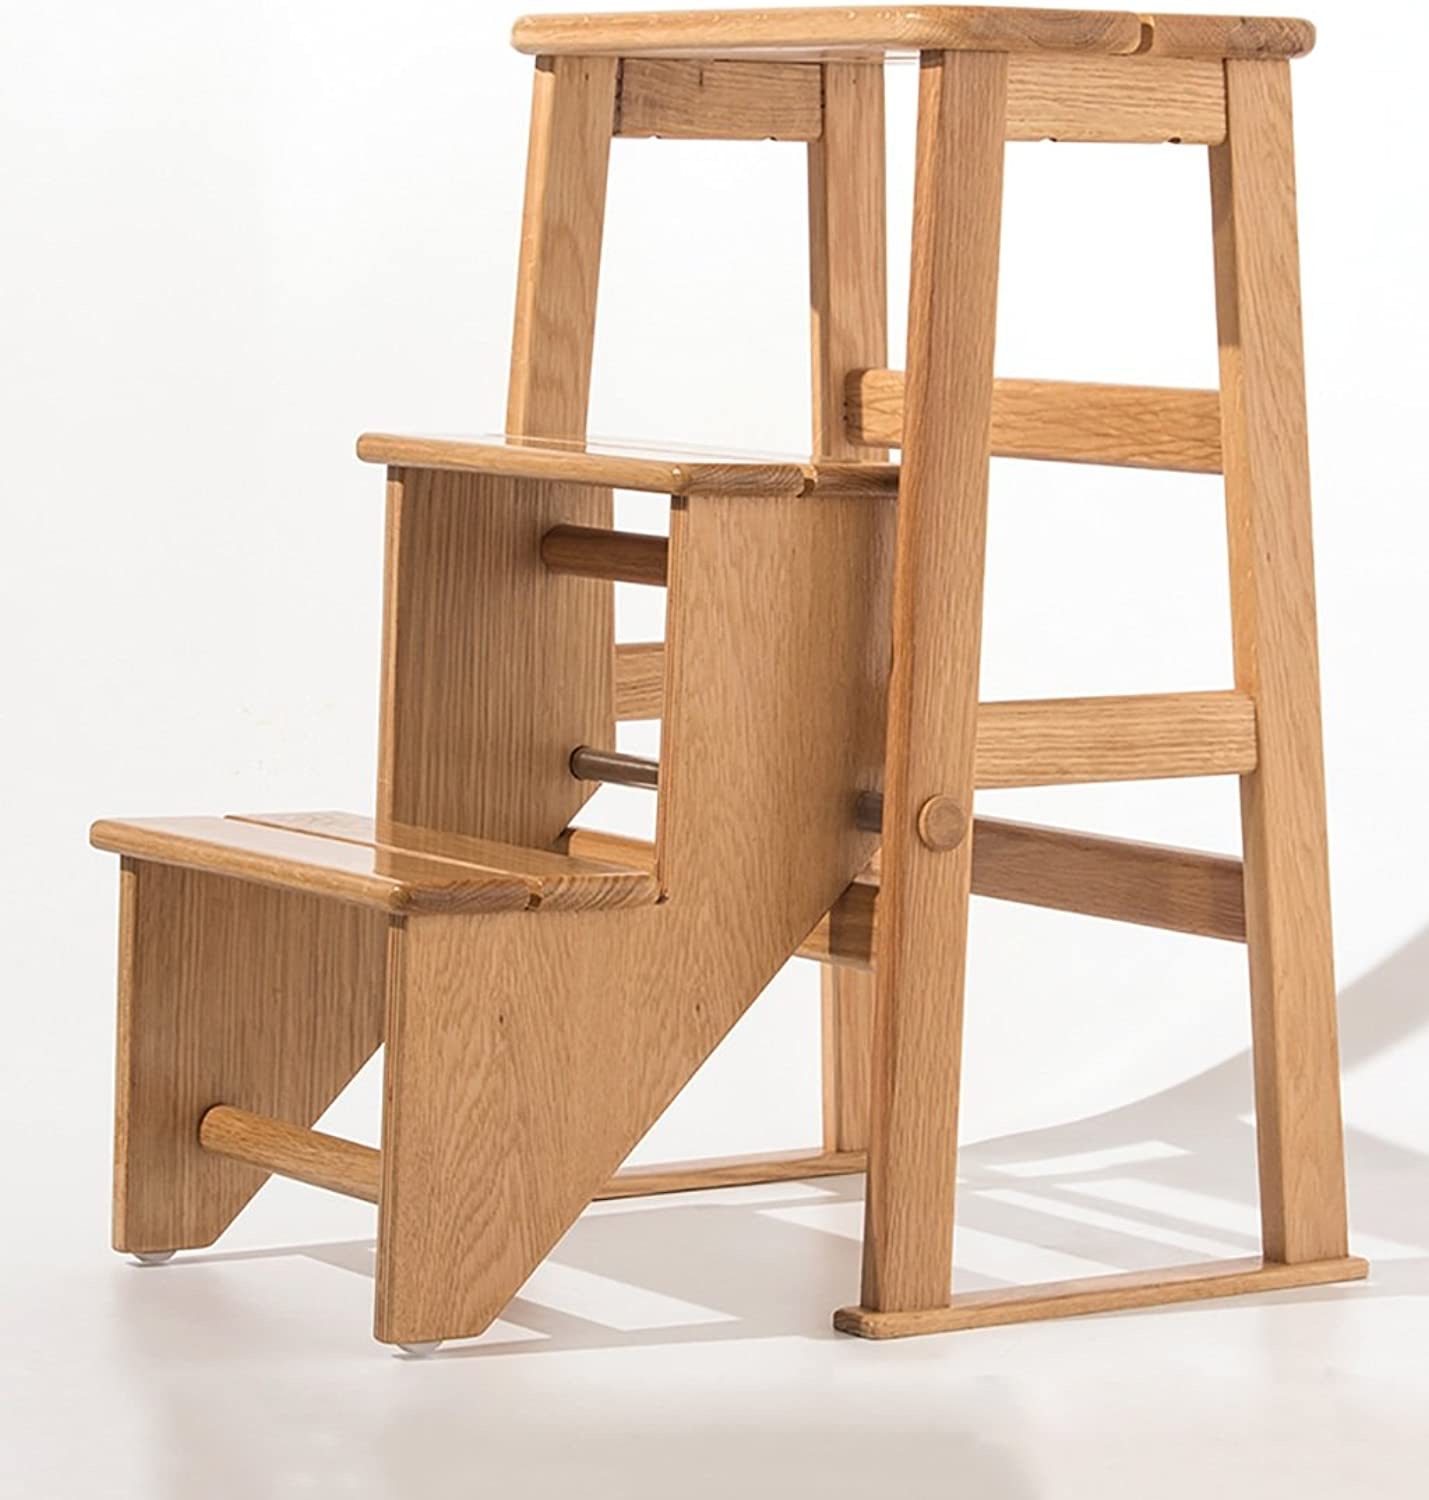 Folding 3 Steps Solid Wood Stairs Ladder StoolClimb Up Step Stool Multifunction Dual Use Flower Stand Shelf